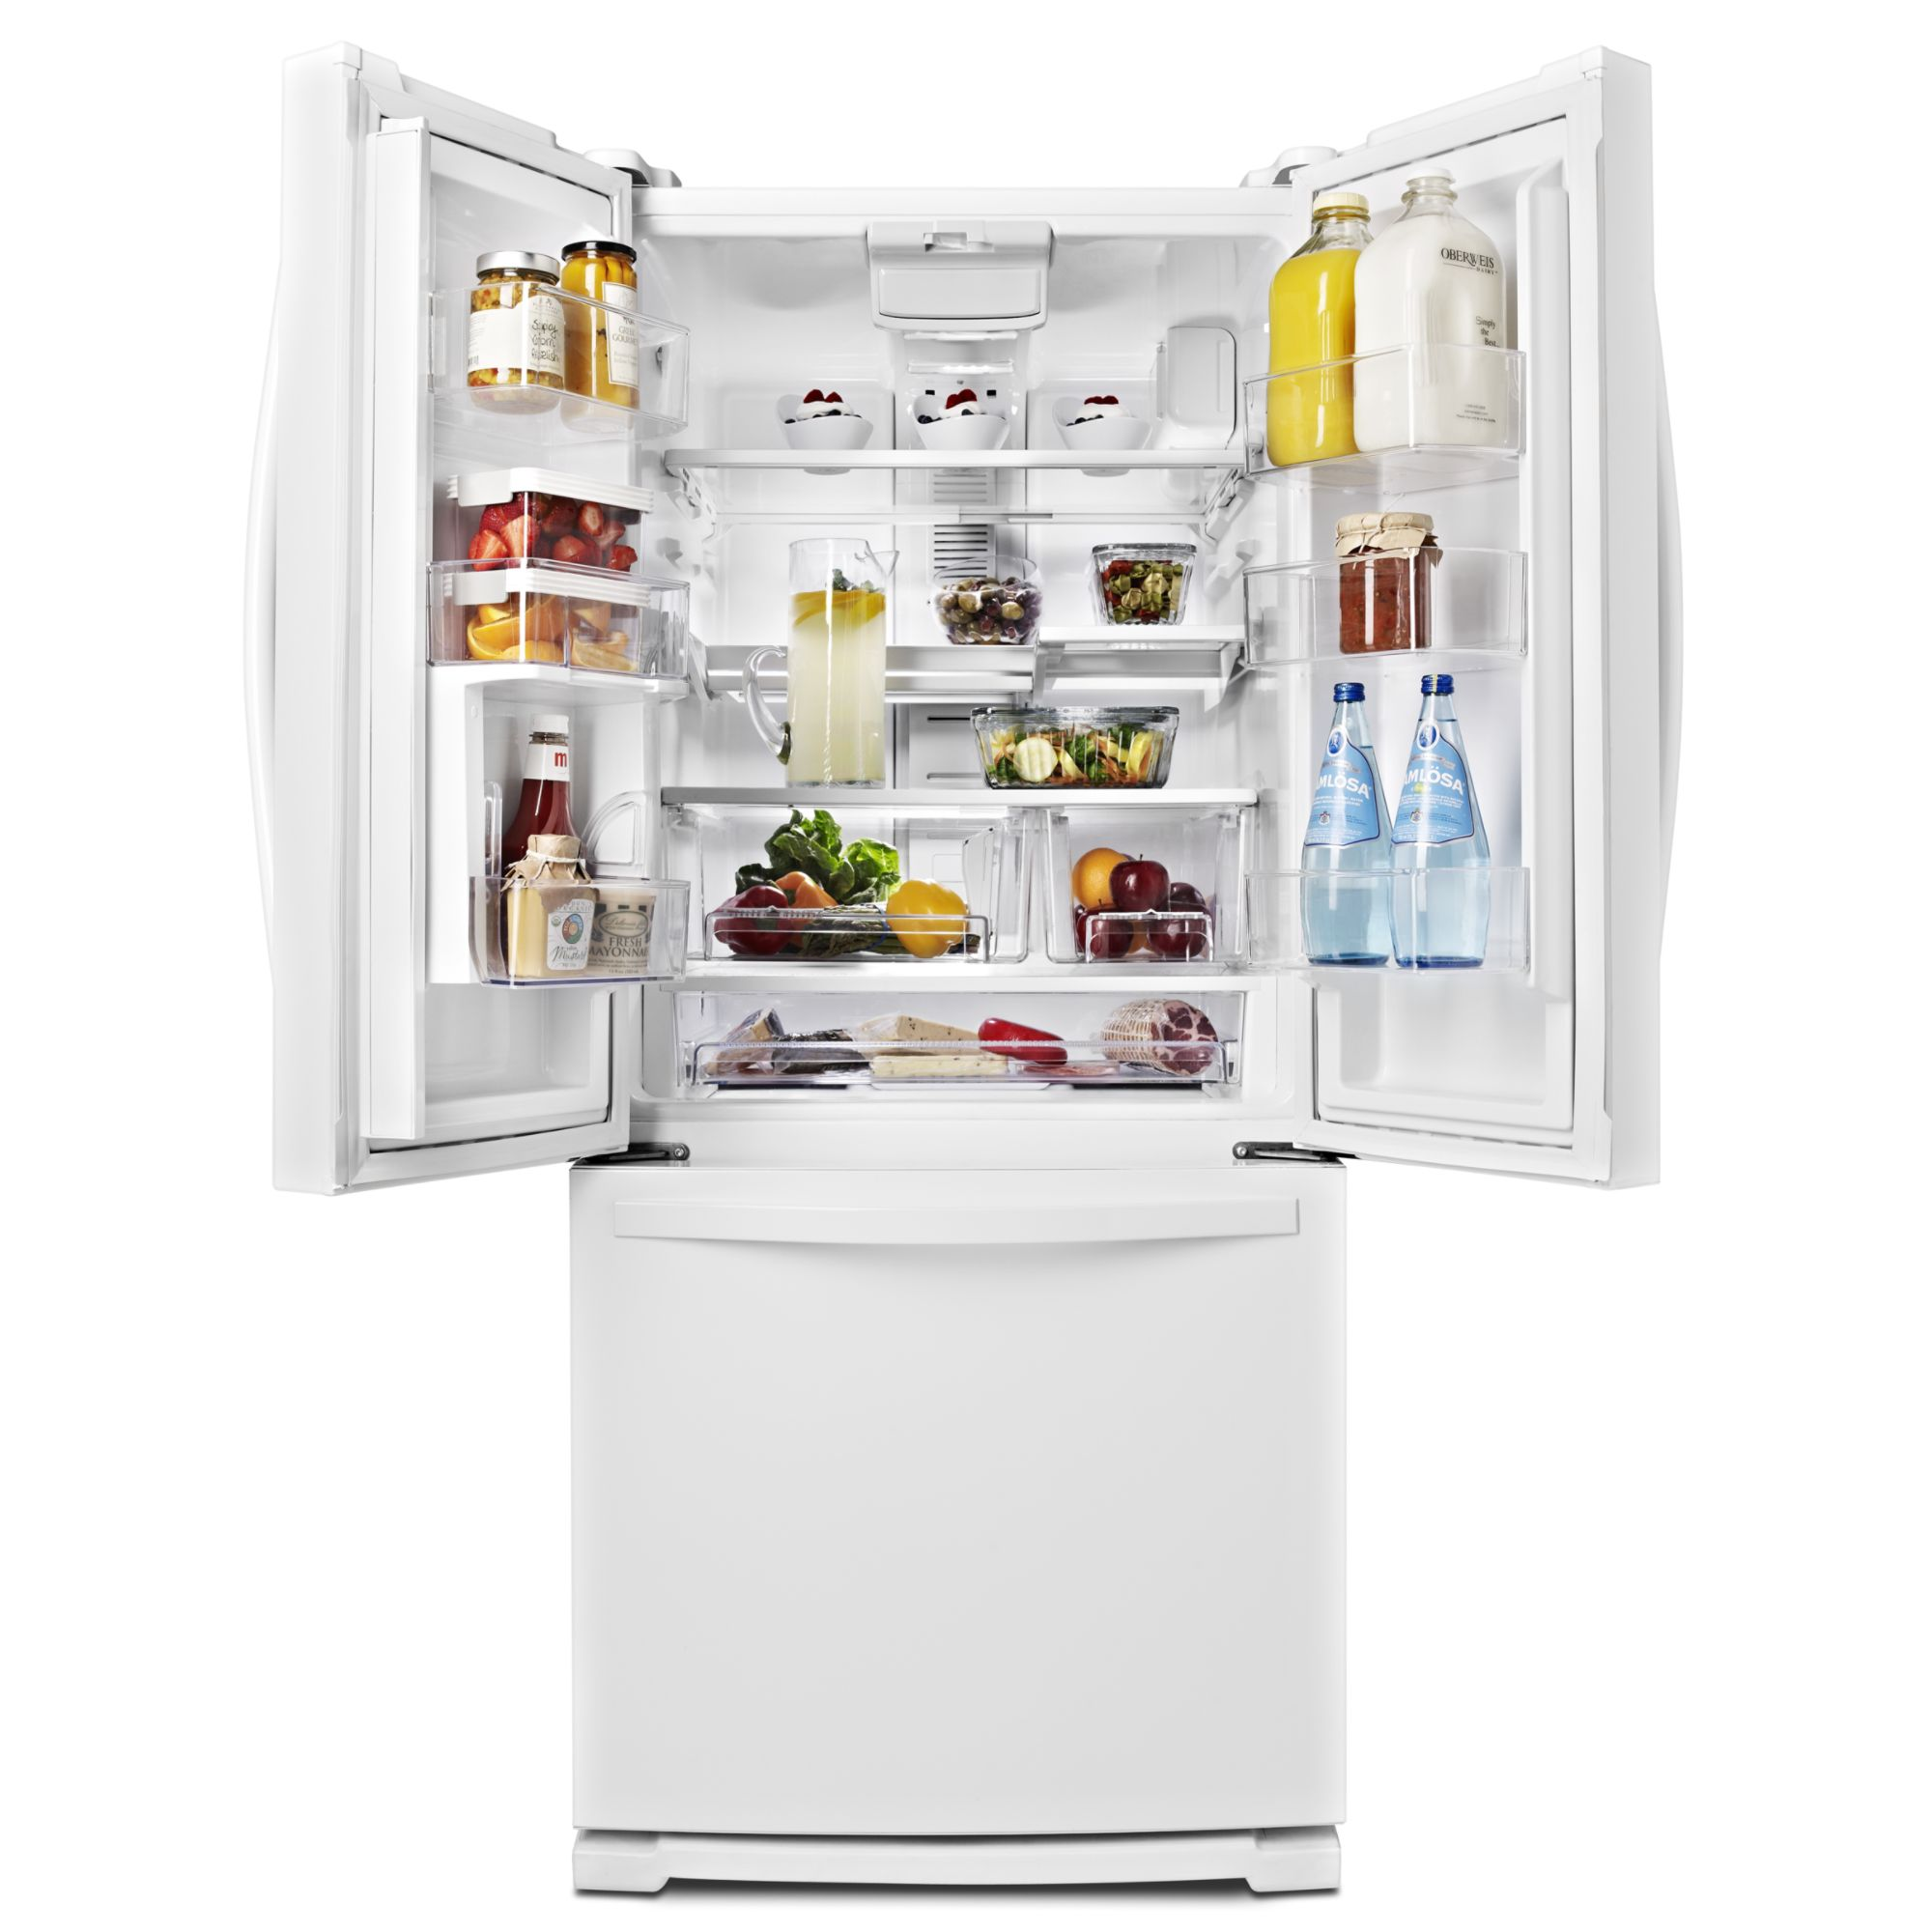 Whirlpool 19.6 cu. ft. French Door Refrigerator w/ Exterior Dispenser - White